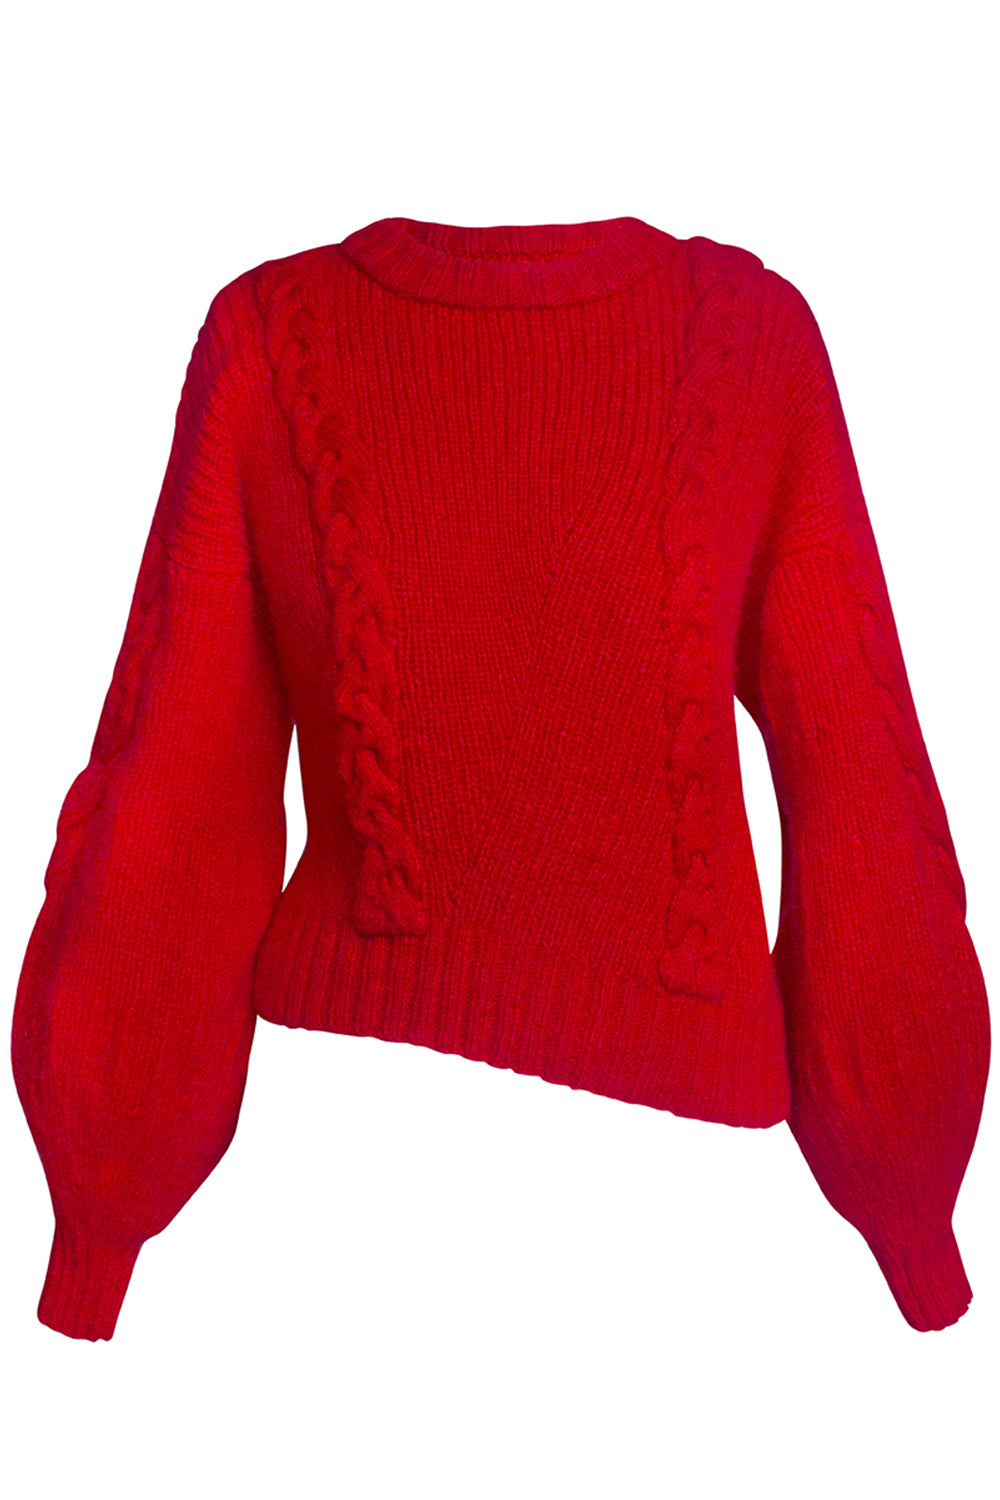 Cecilia Red Sweater